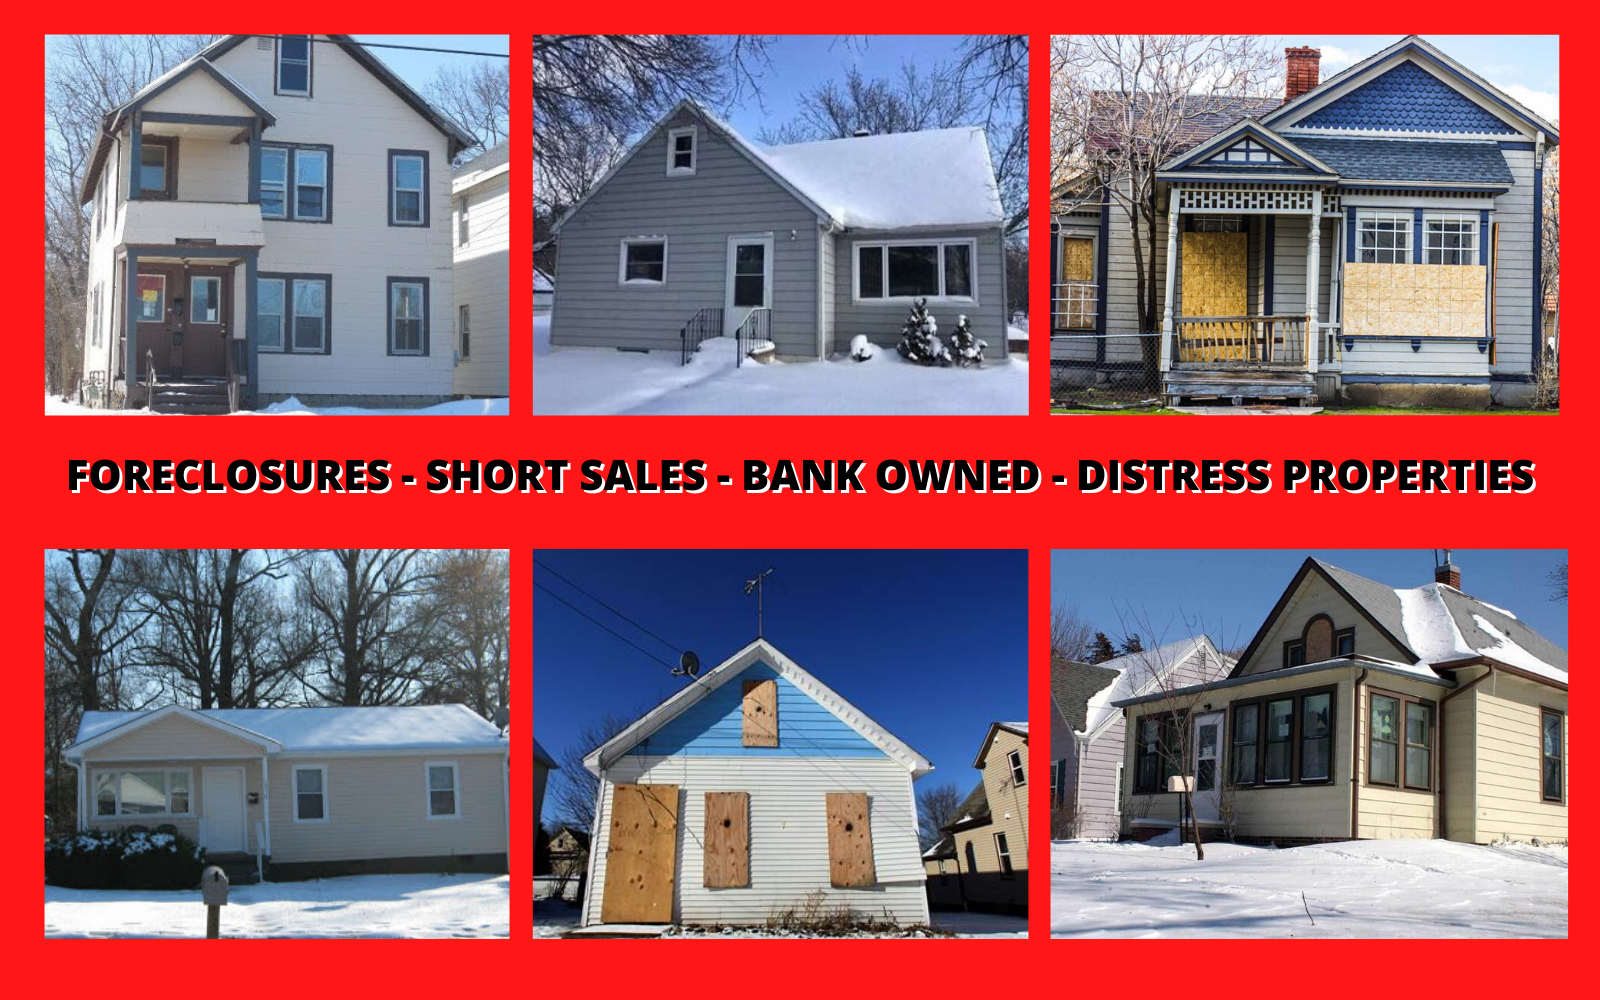 FORECLOSURES - SHORT SALES - BANK OWNEDred bcground